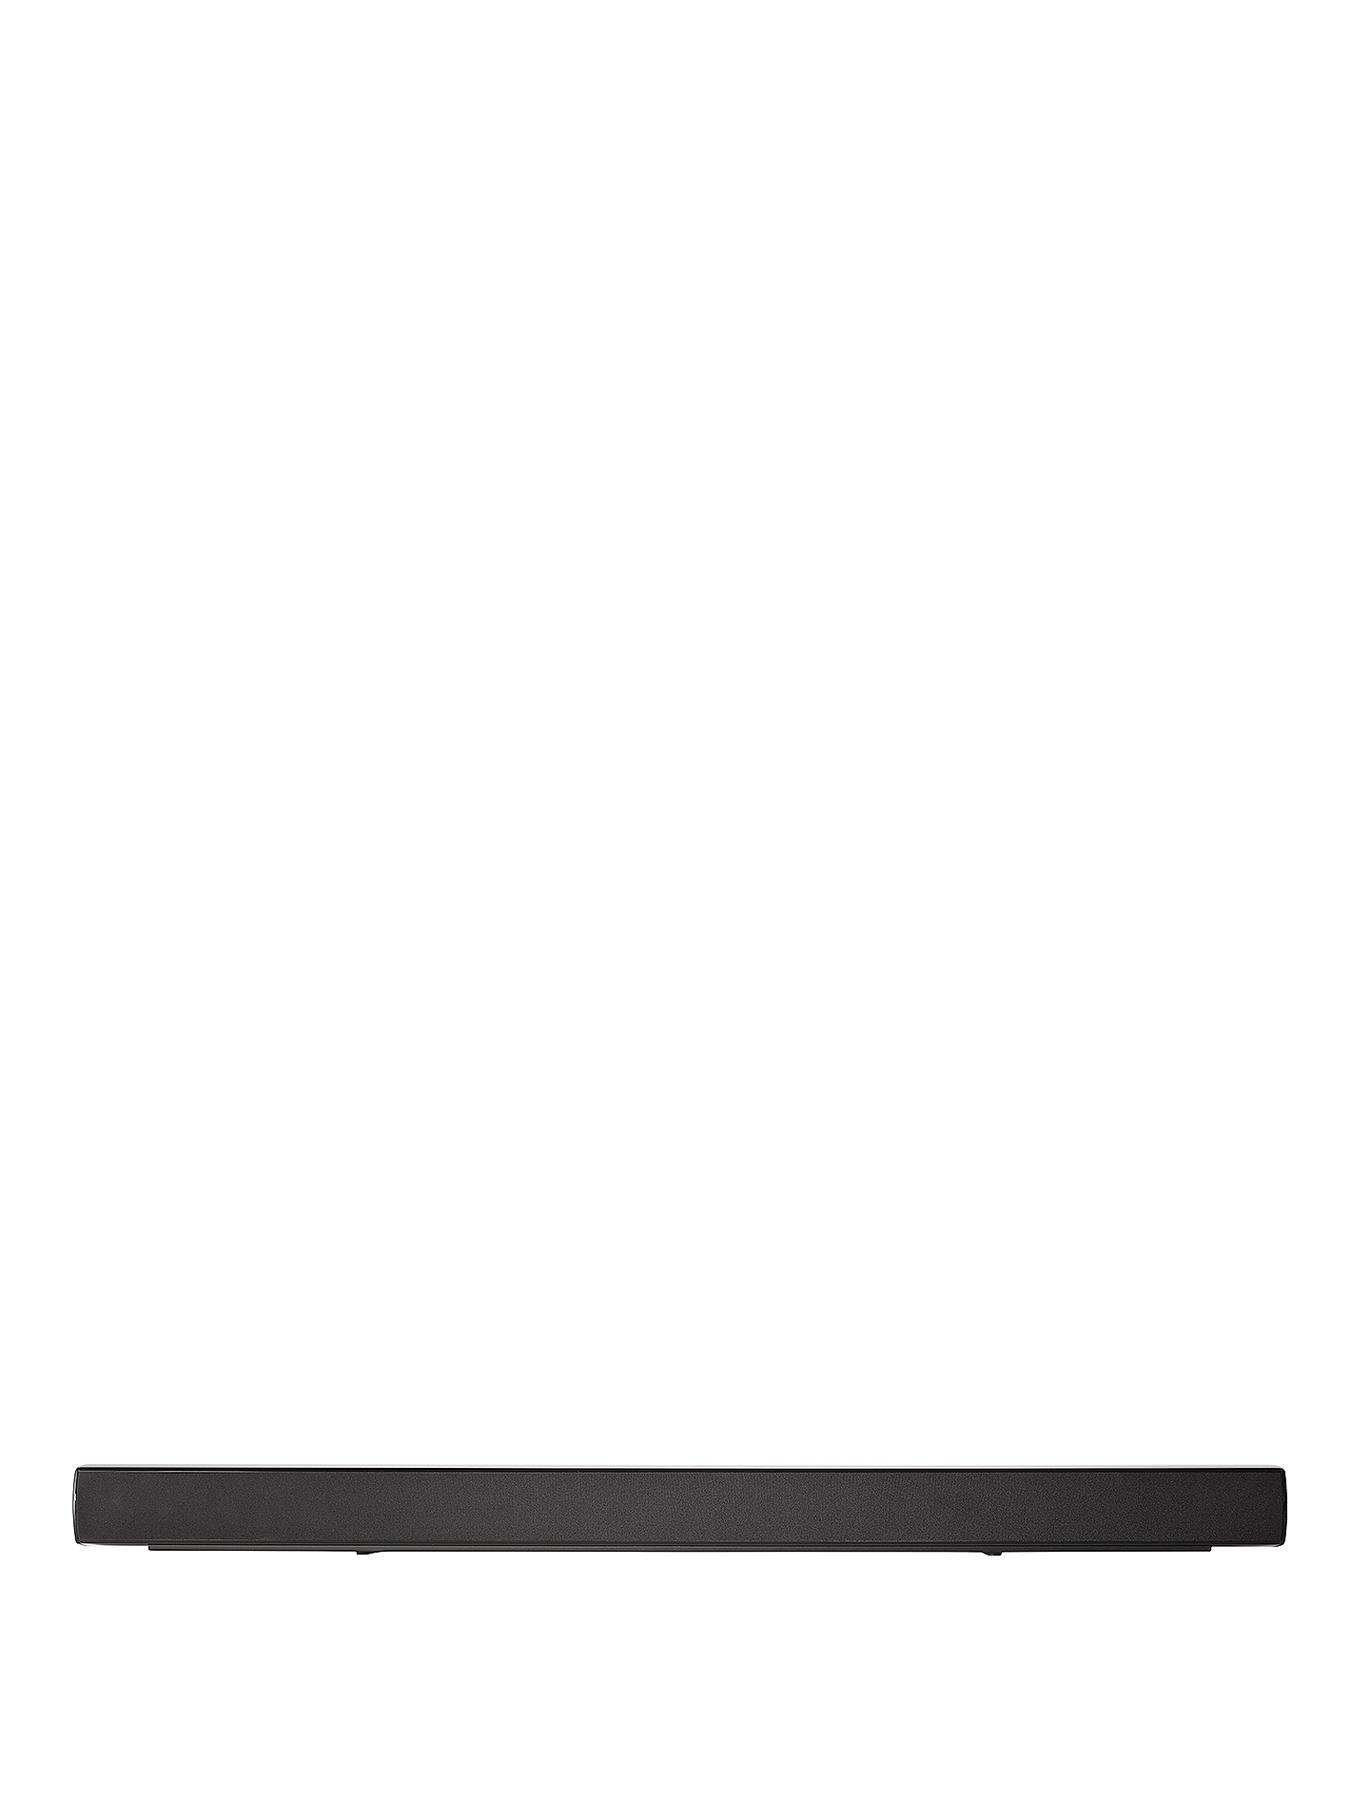 NB2540A 120-watt Bluetooth Soundbar at Littlewoods